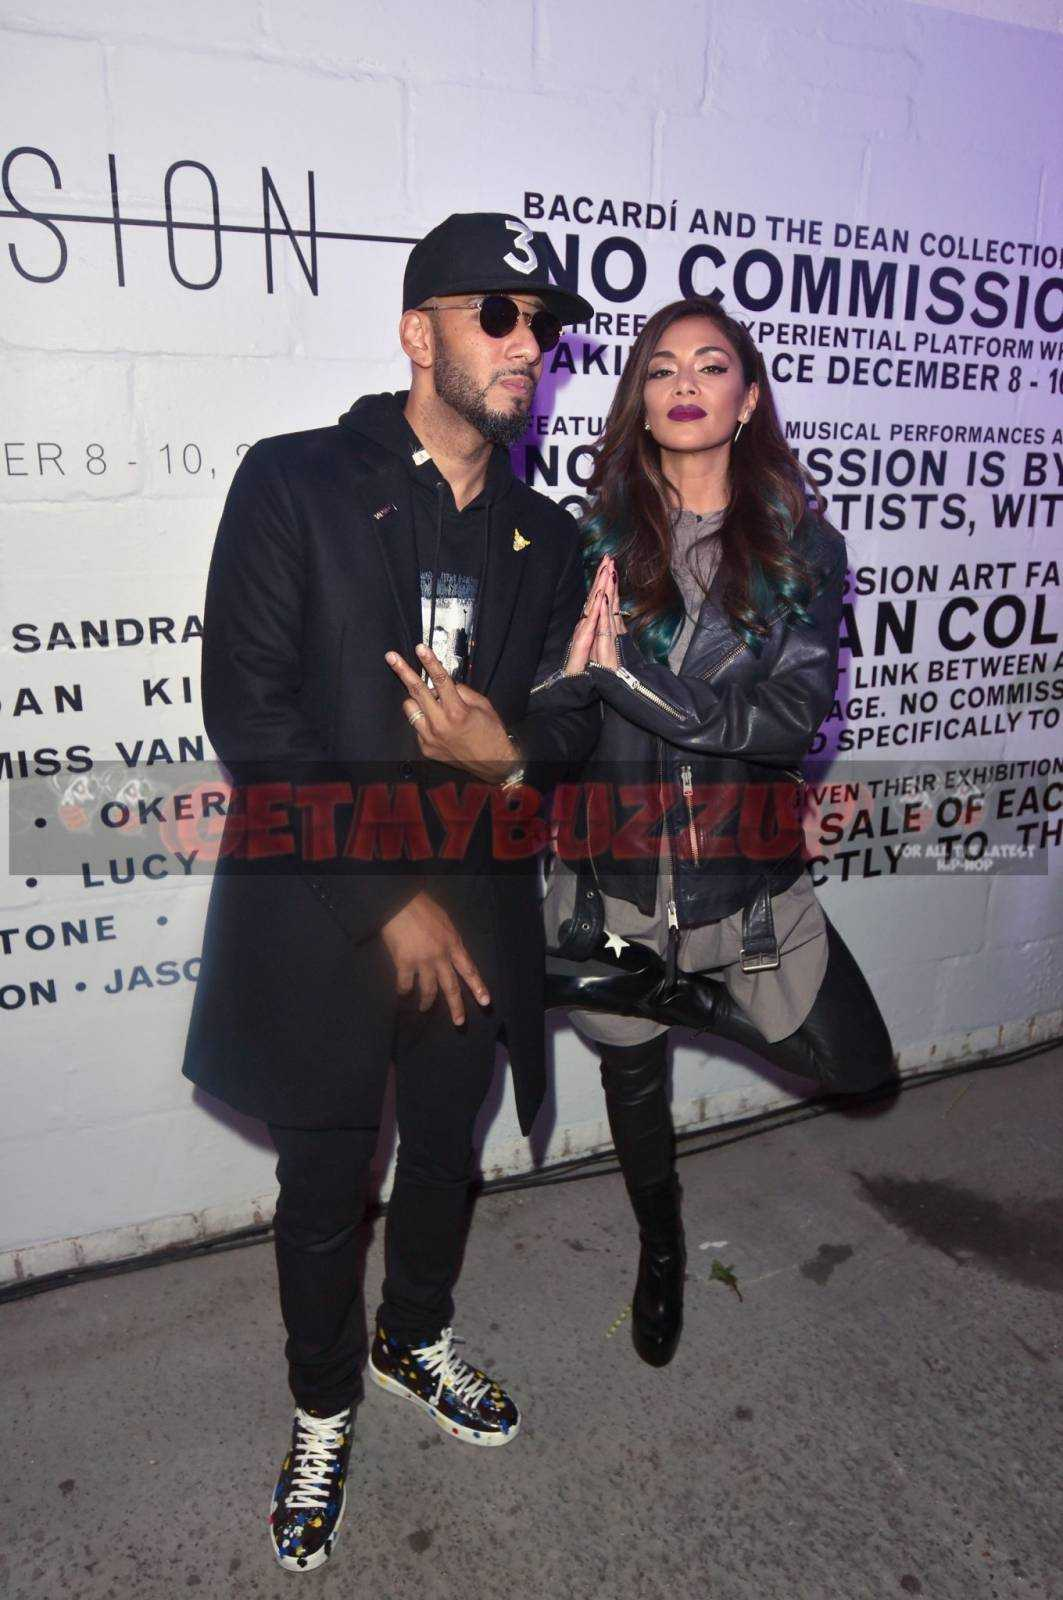 Celebrity Sightings: NICOLE SCHERZINGER, EMELI SANDE, NICK GRIMSHAW, NAUGHTY BOY, SWIZZ BEATZ AND BLOOD ORANGE DESCEND ON THE ARCHES, SOUTHWARK FOR EUROPE'S FIRST EVER BACARDI NO COMMISSION EVENT [PHOTOS]